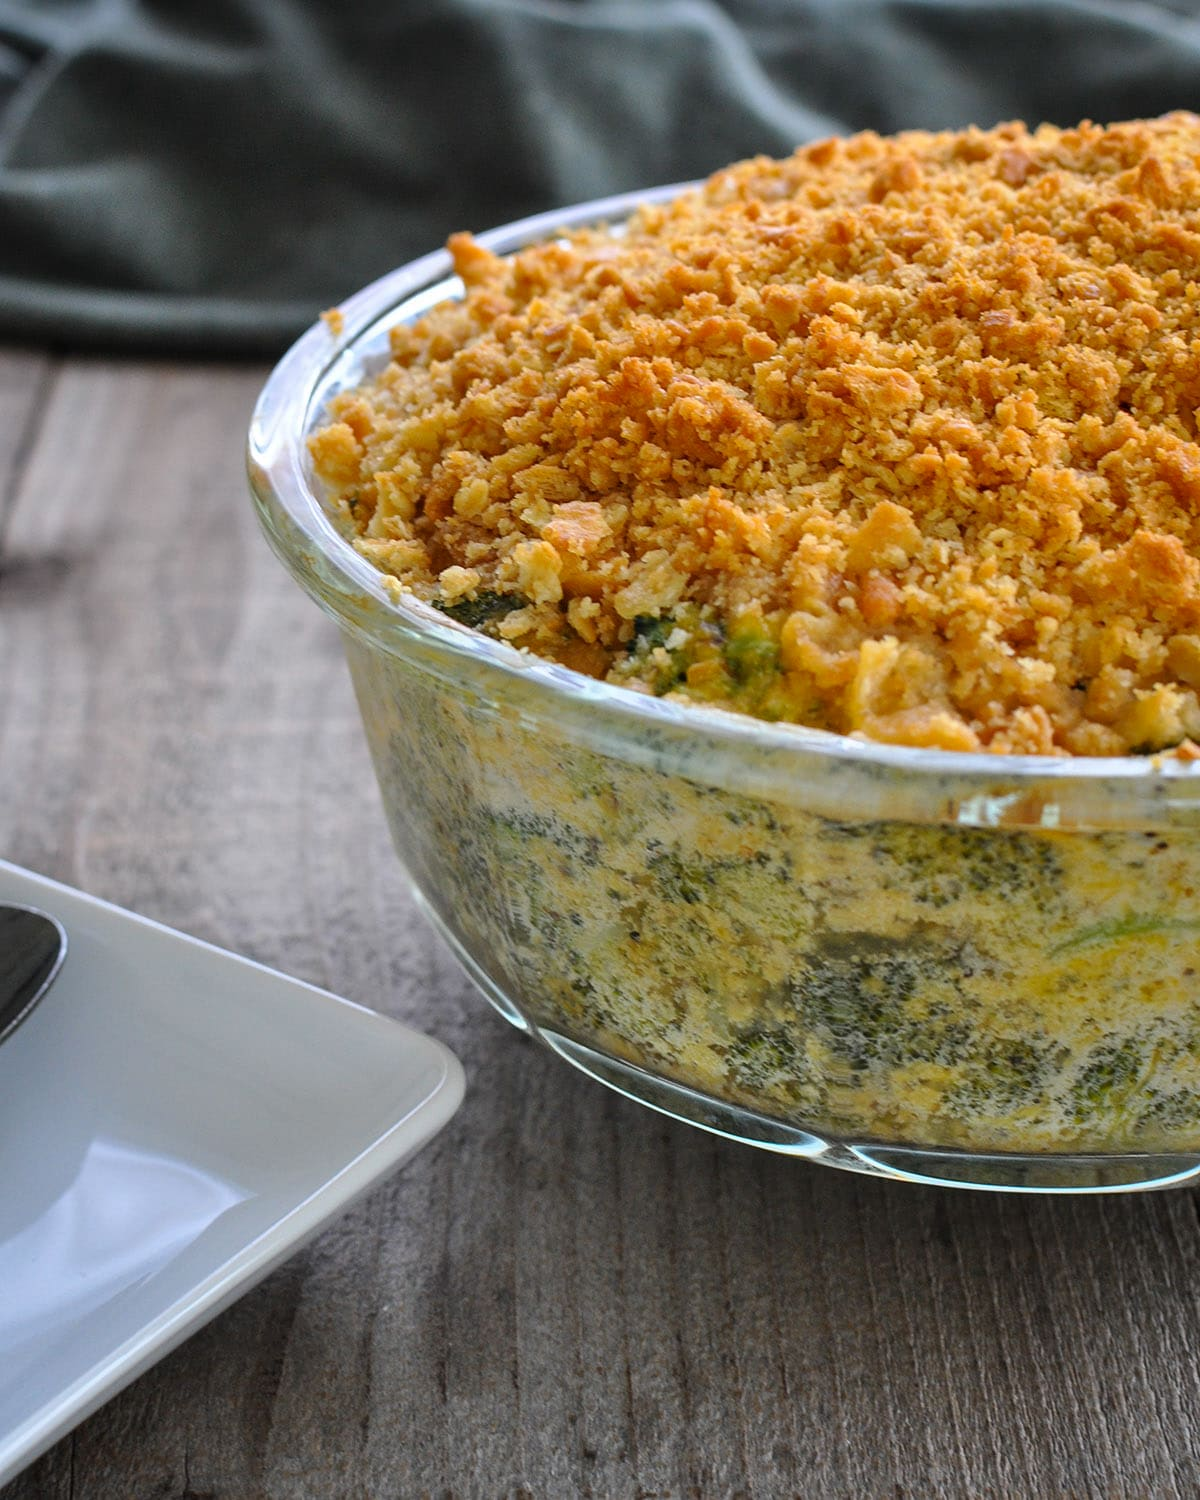 broccoli cheese casserole in a clear dish next to a white plate